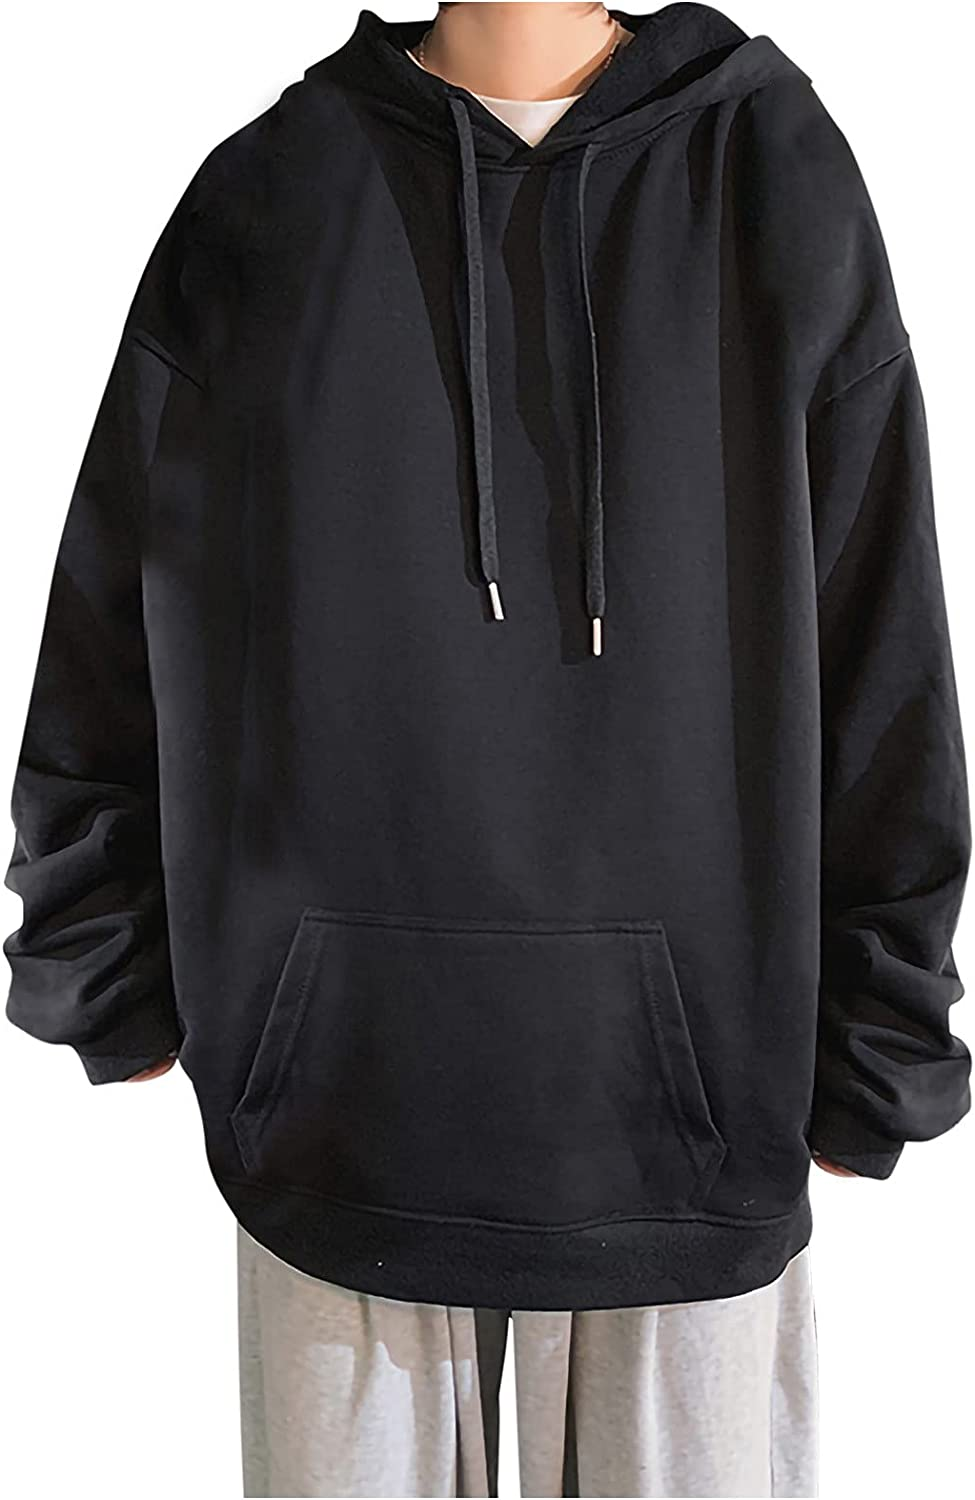 2021 new Large Size Hooded Sweatshirt for Men Solid Long Sleeve Popular products Pu Casual